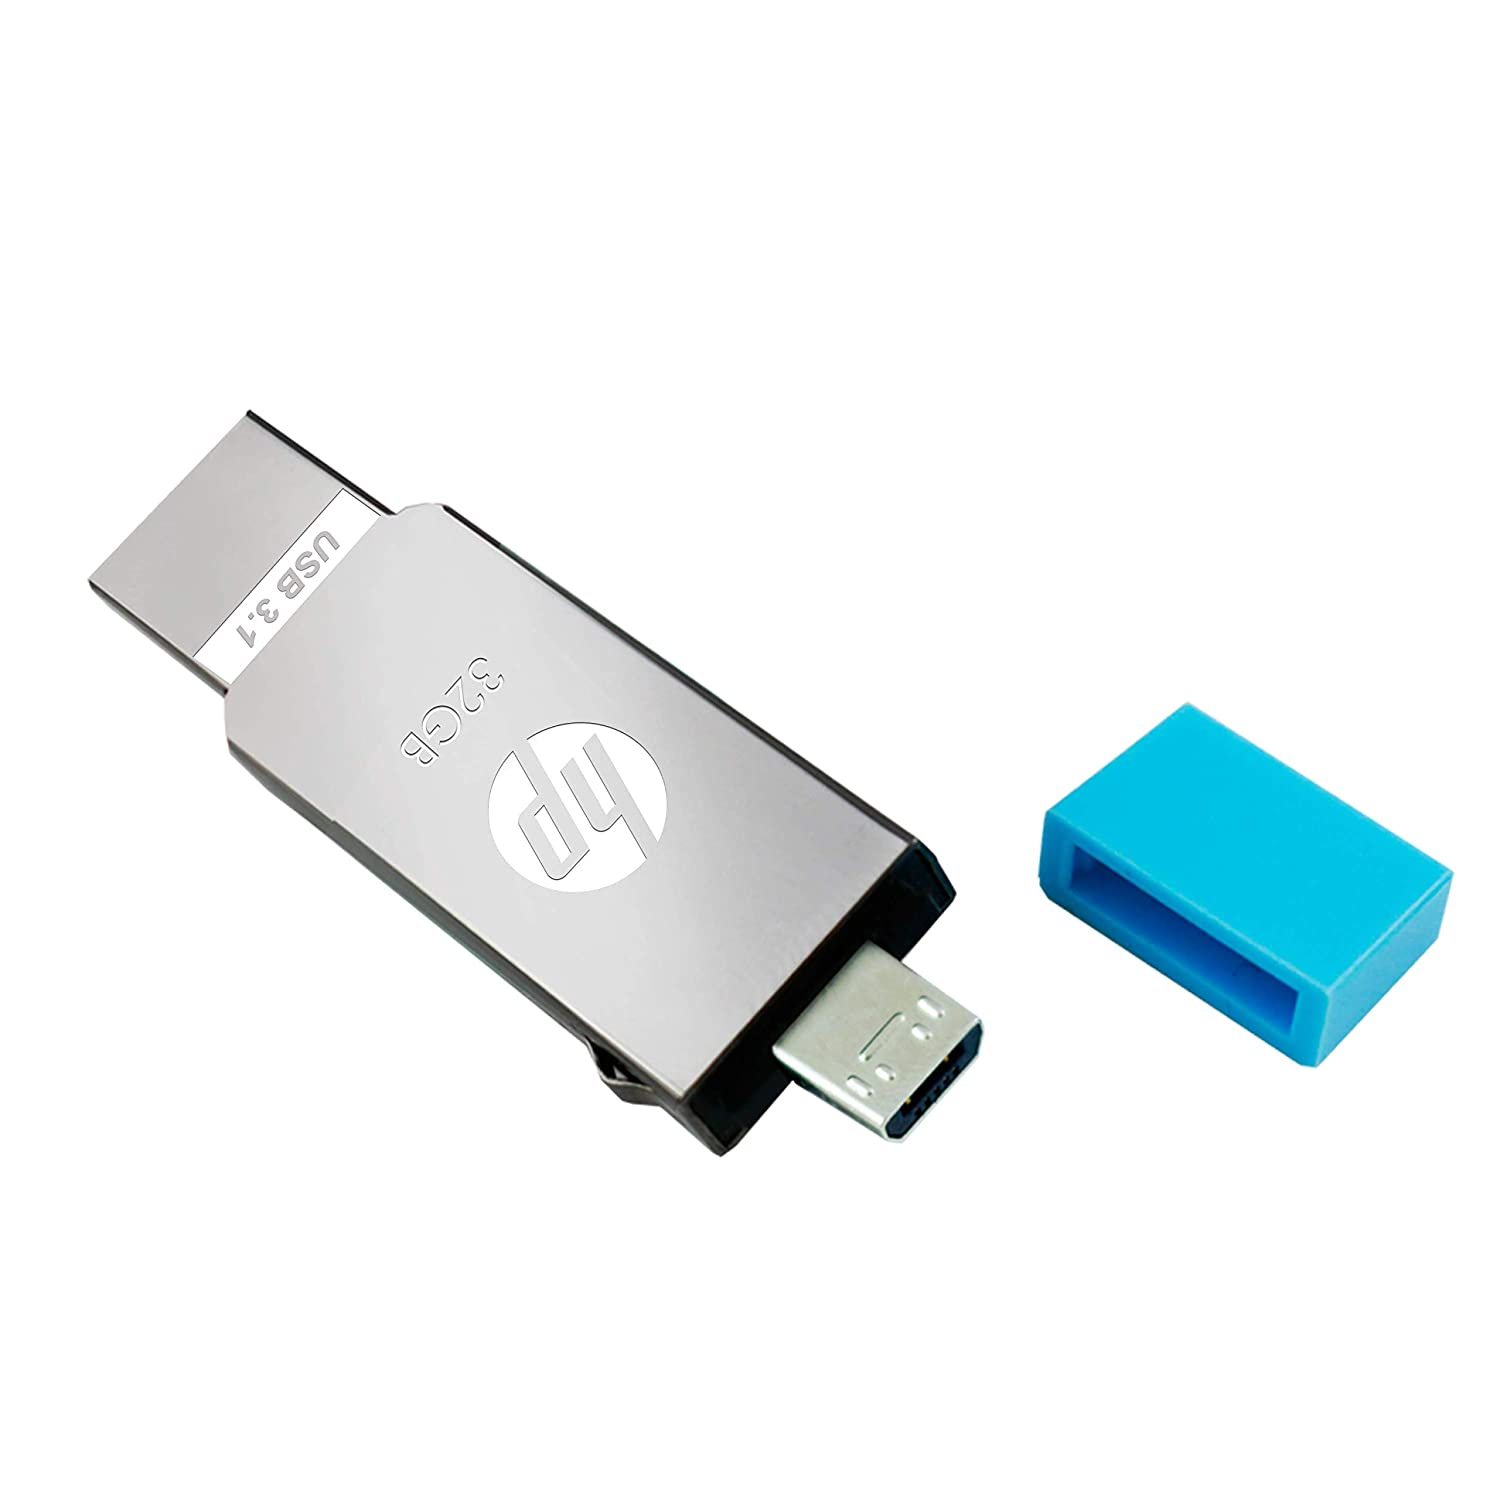 Pen Drive Hp 32GB X302M Metal OTG 3.1